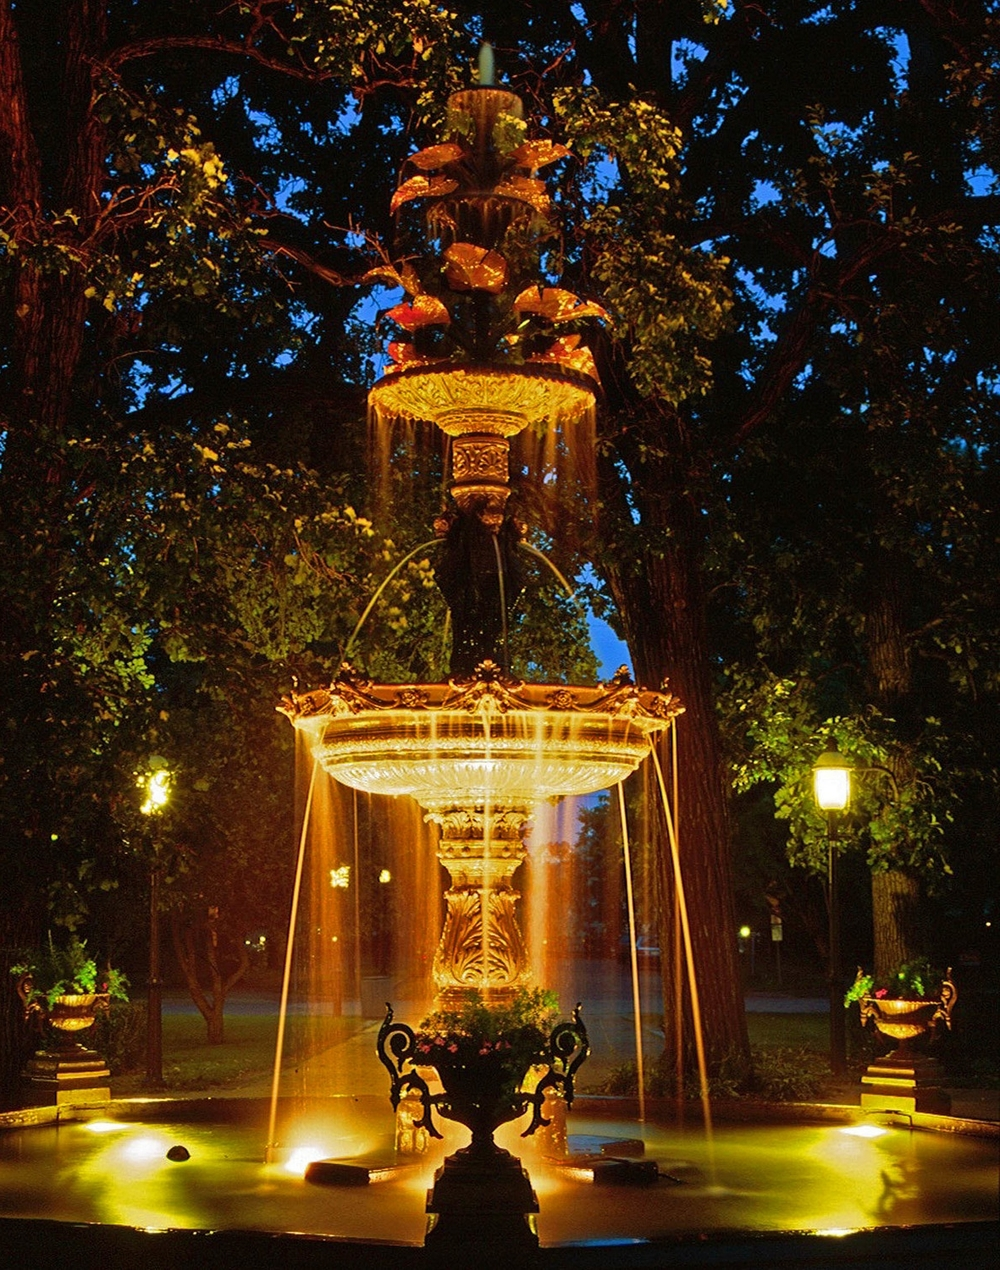 06. NightFountain2.jpg